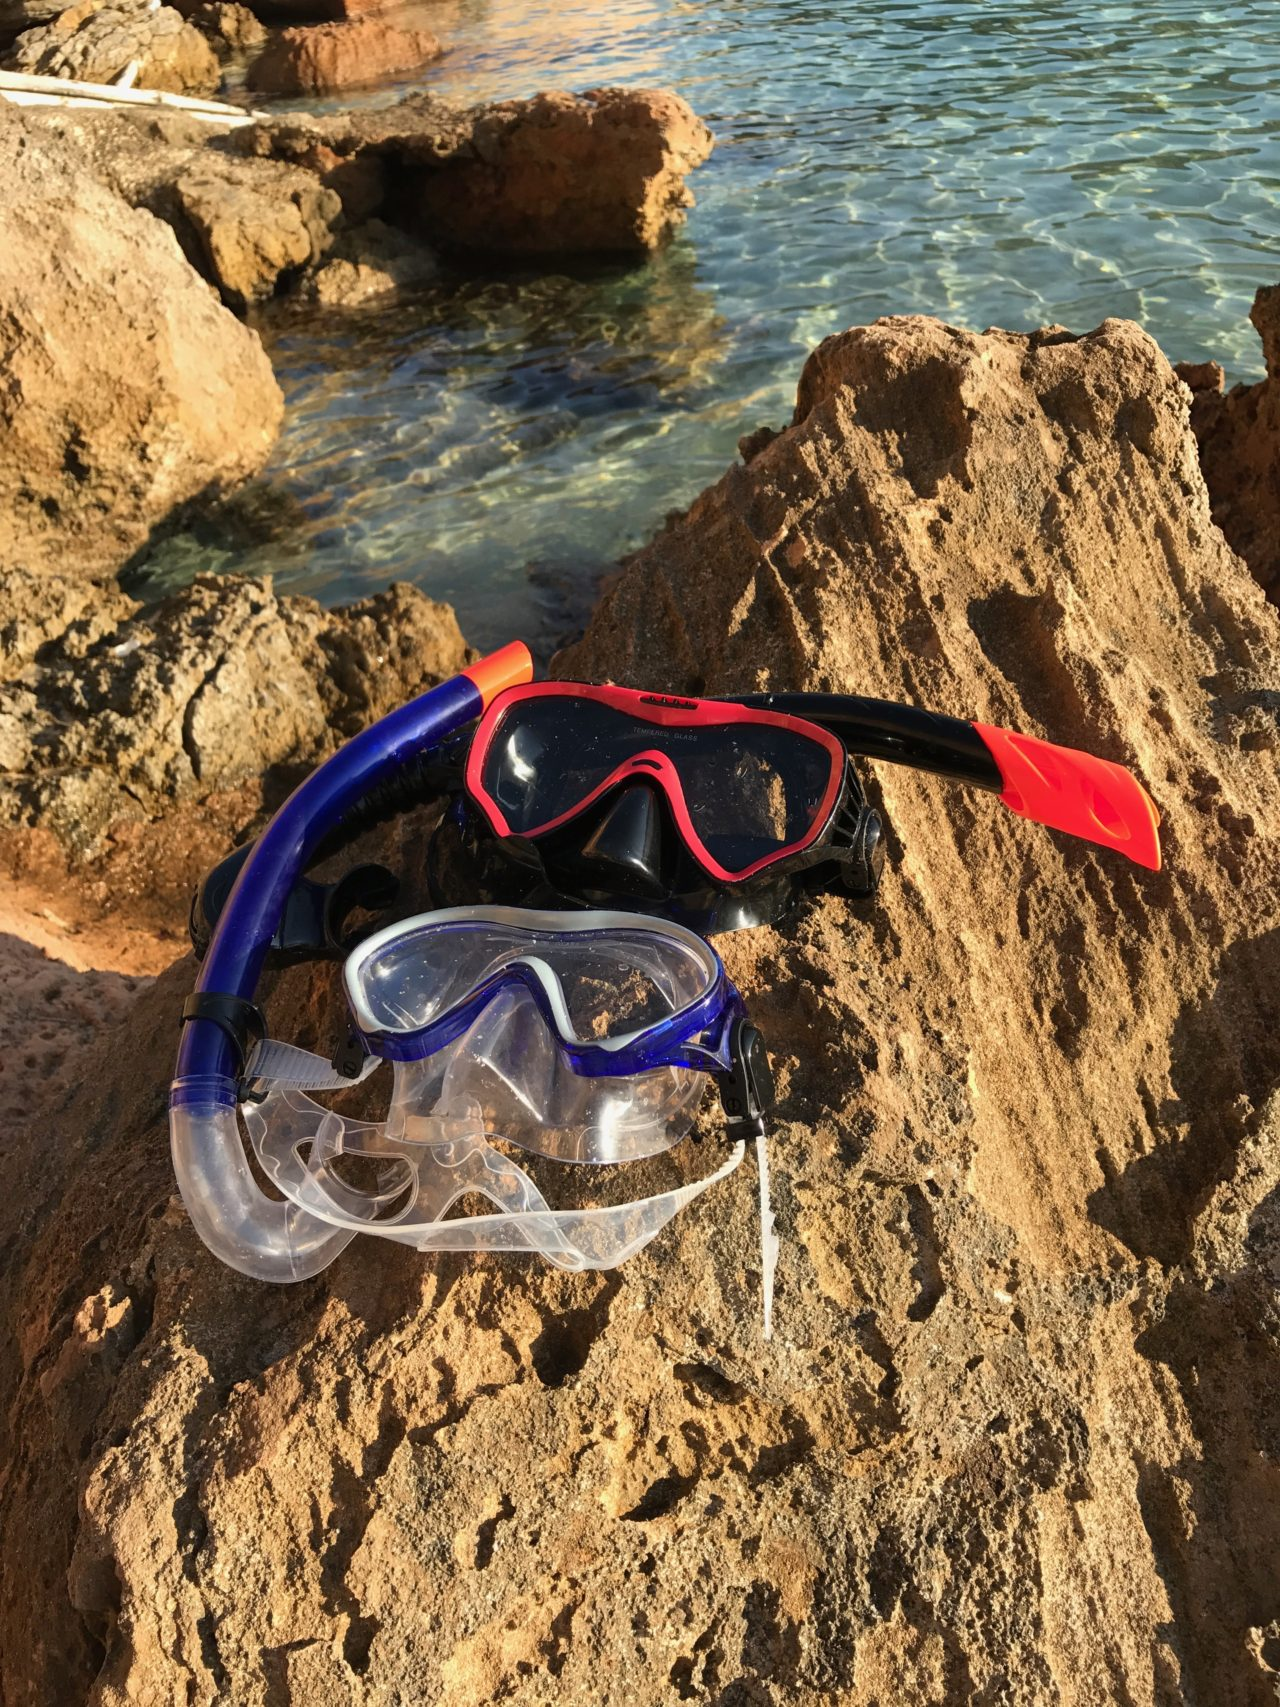 Snorking Diving Gear On Ocean Side Rocks